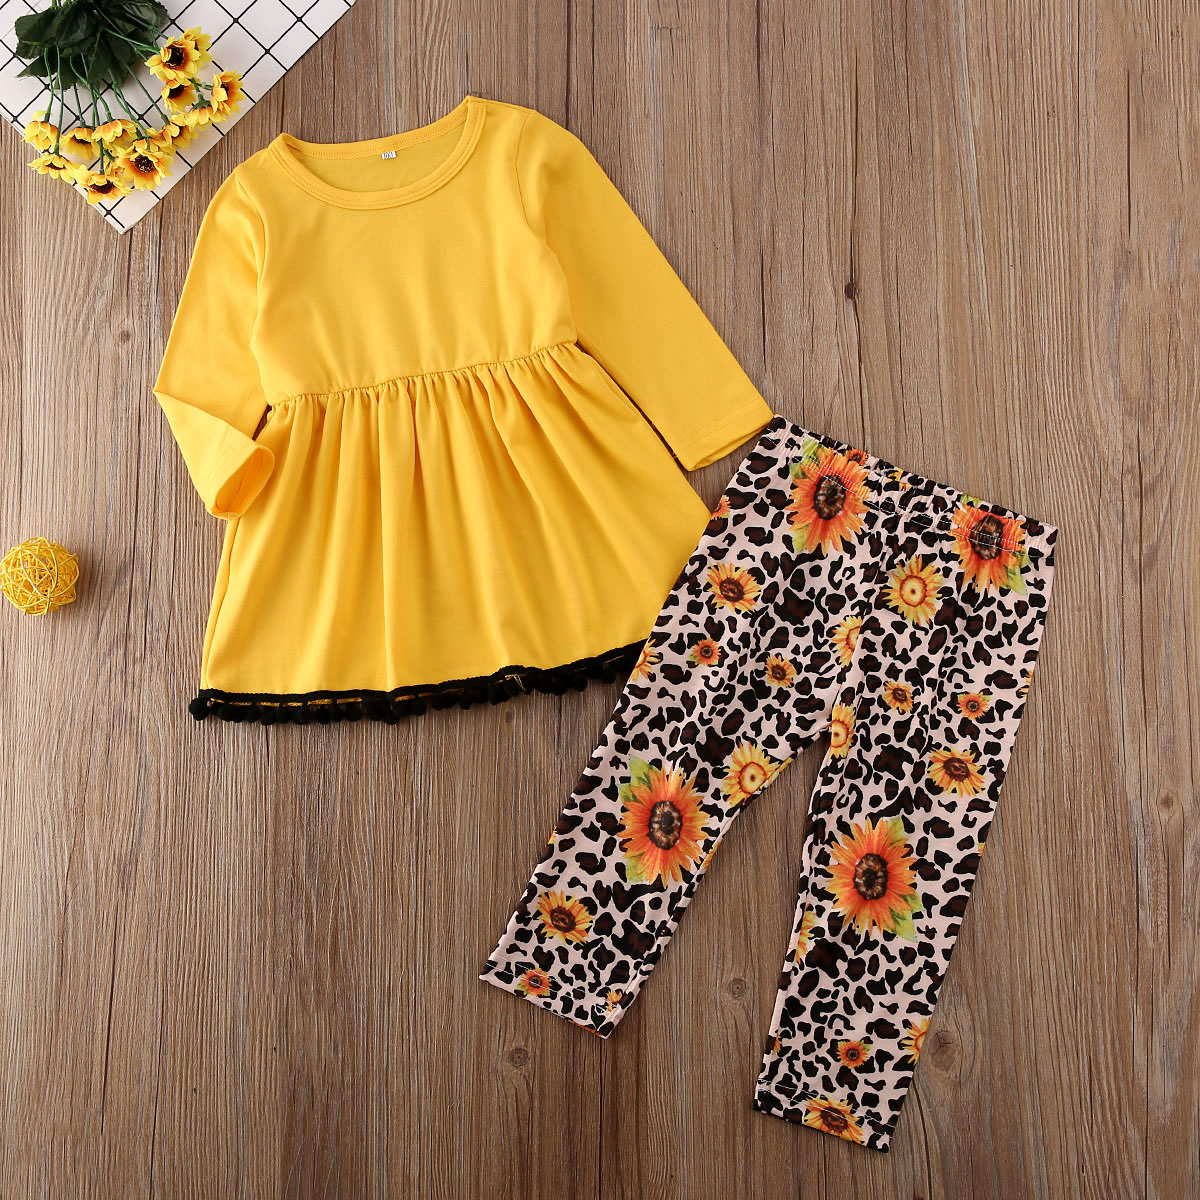 Toddler Baby Girls Leopard Long Sleeve T-Shirt Tops Yellow Mini Pencil Skirts Outfit Fall Winter Clothes Set